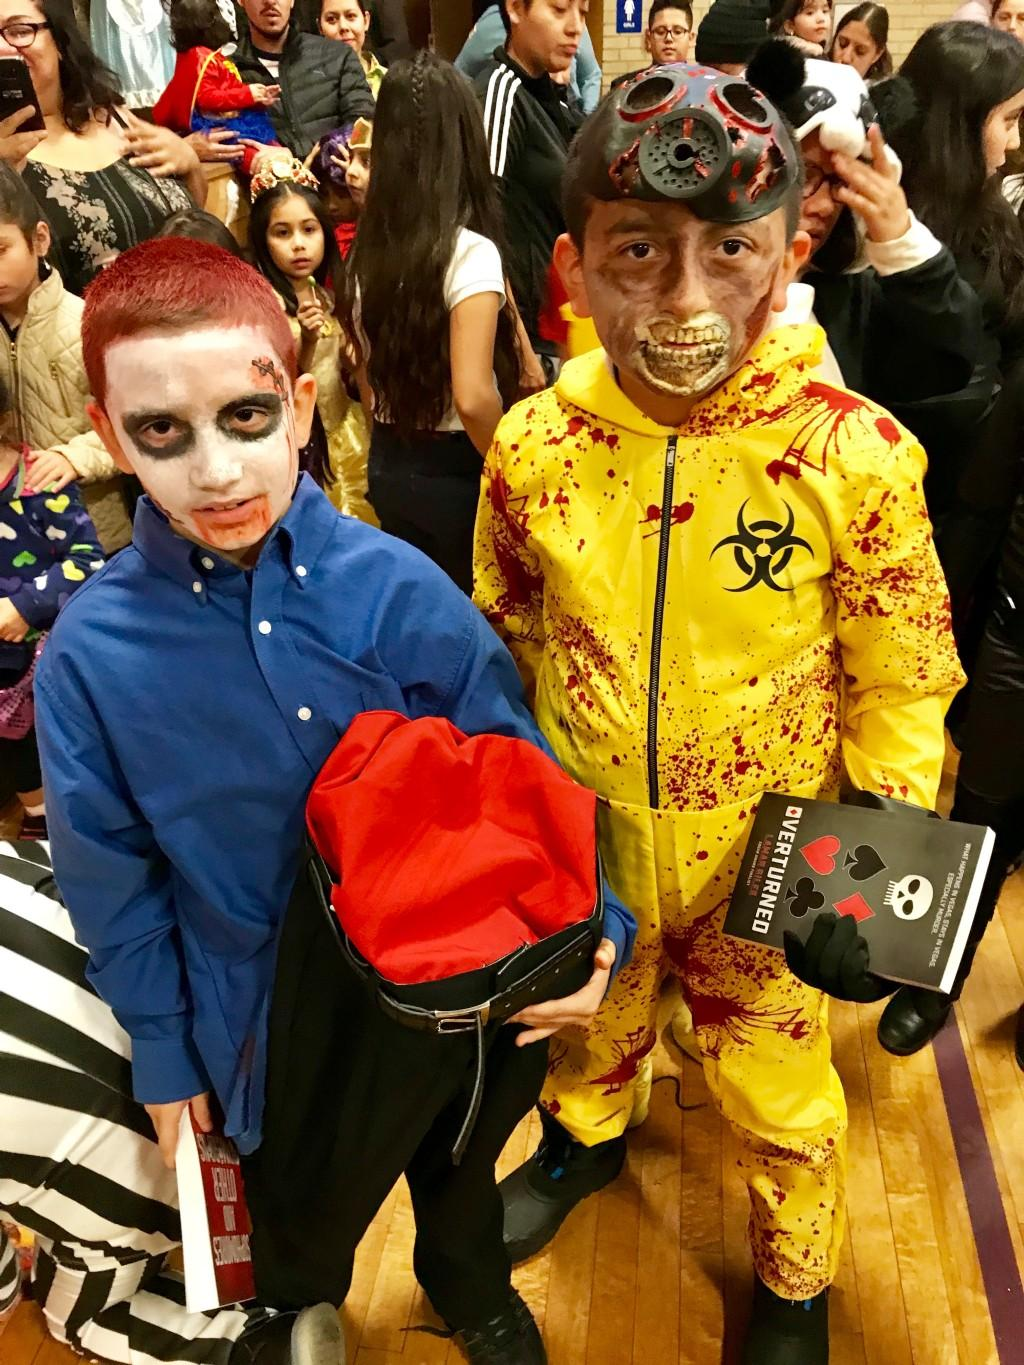 Scary costumes